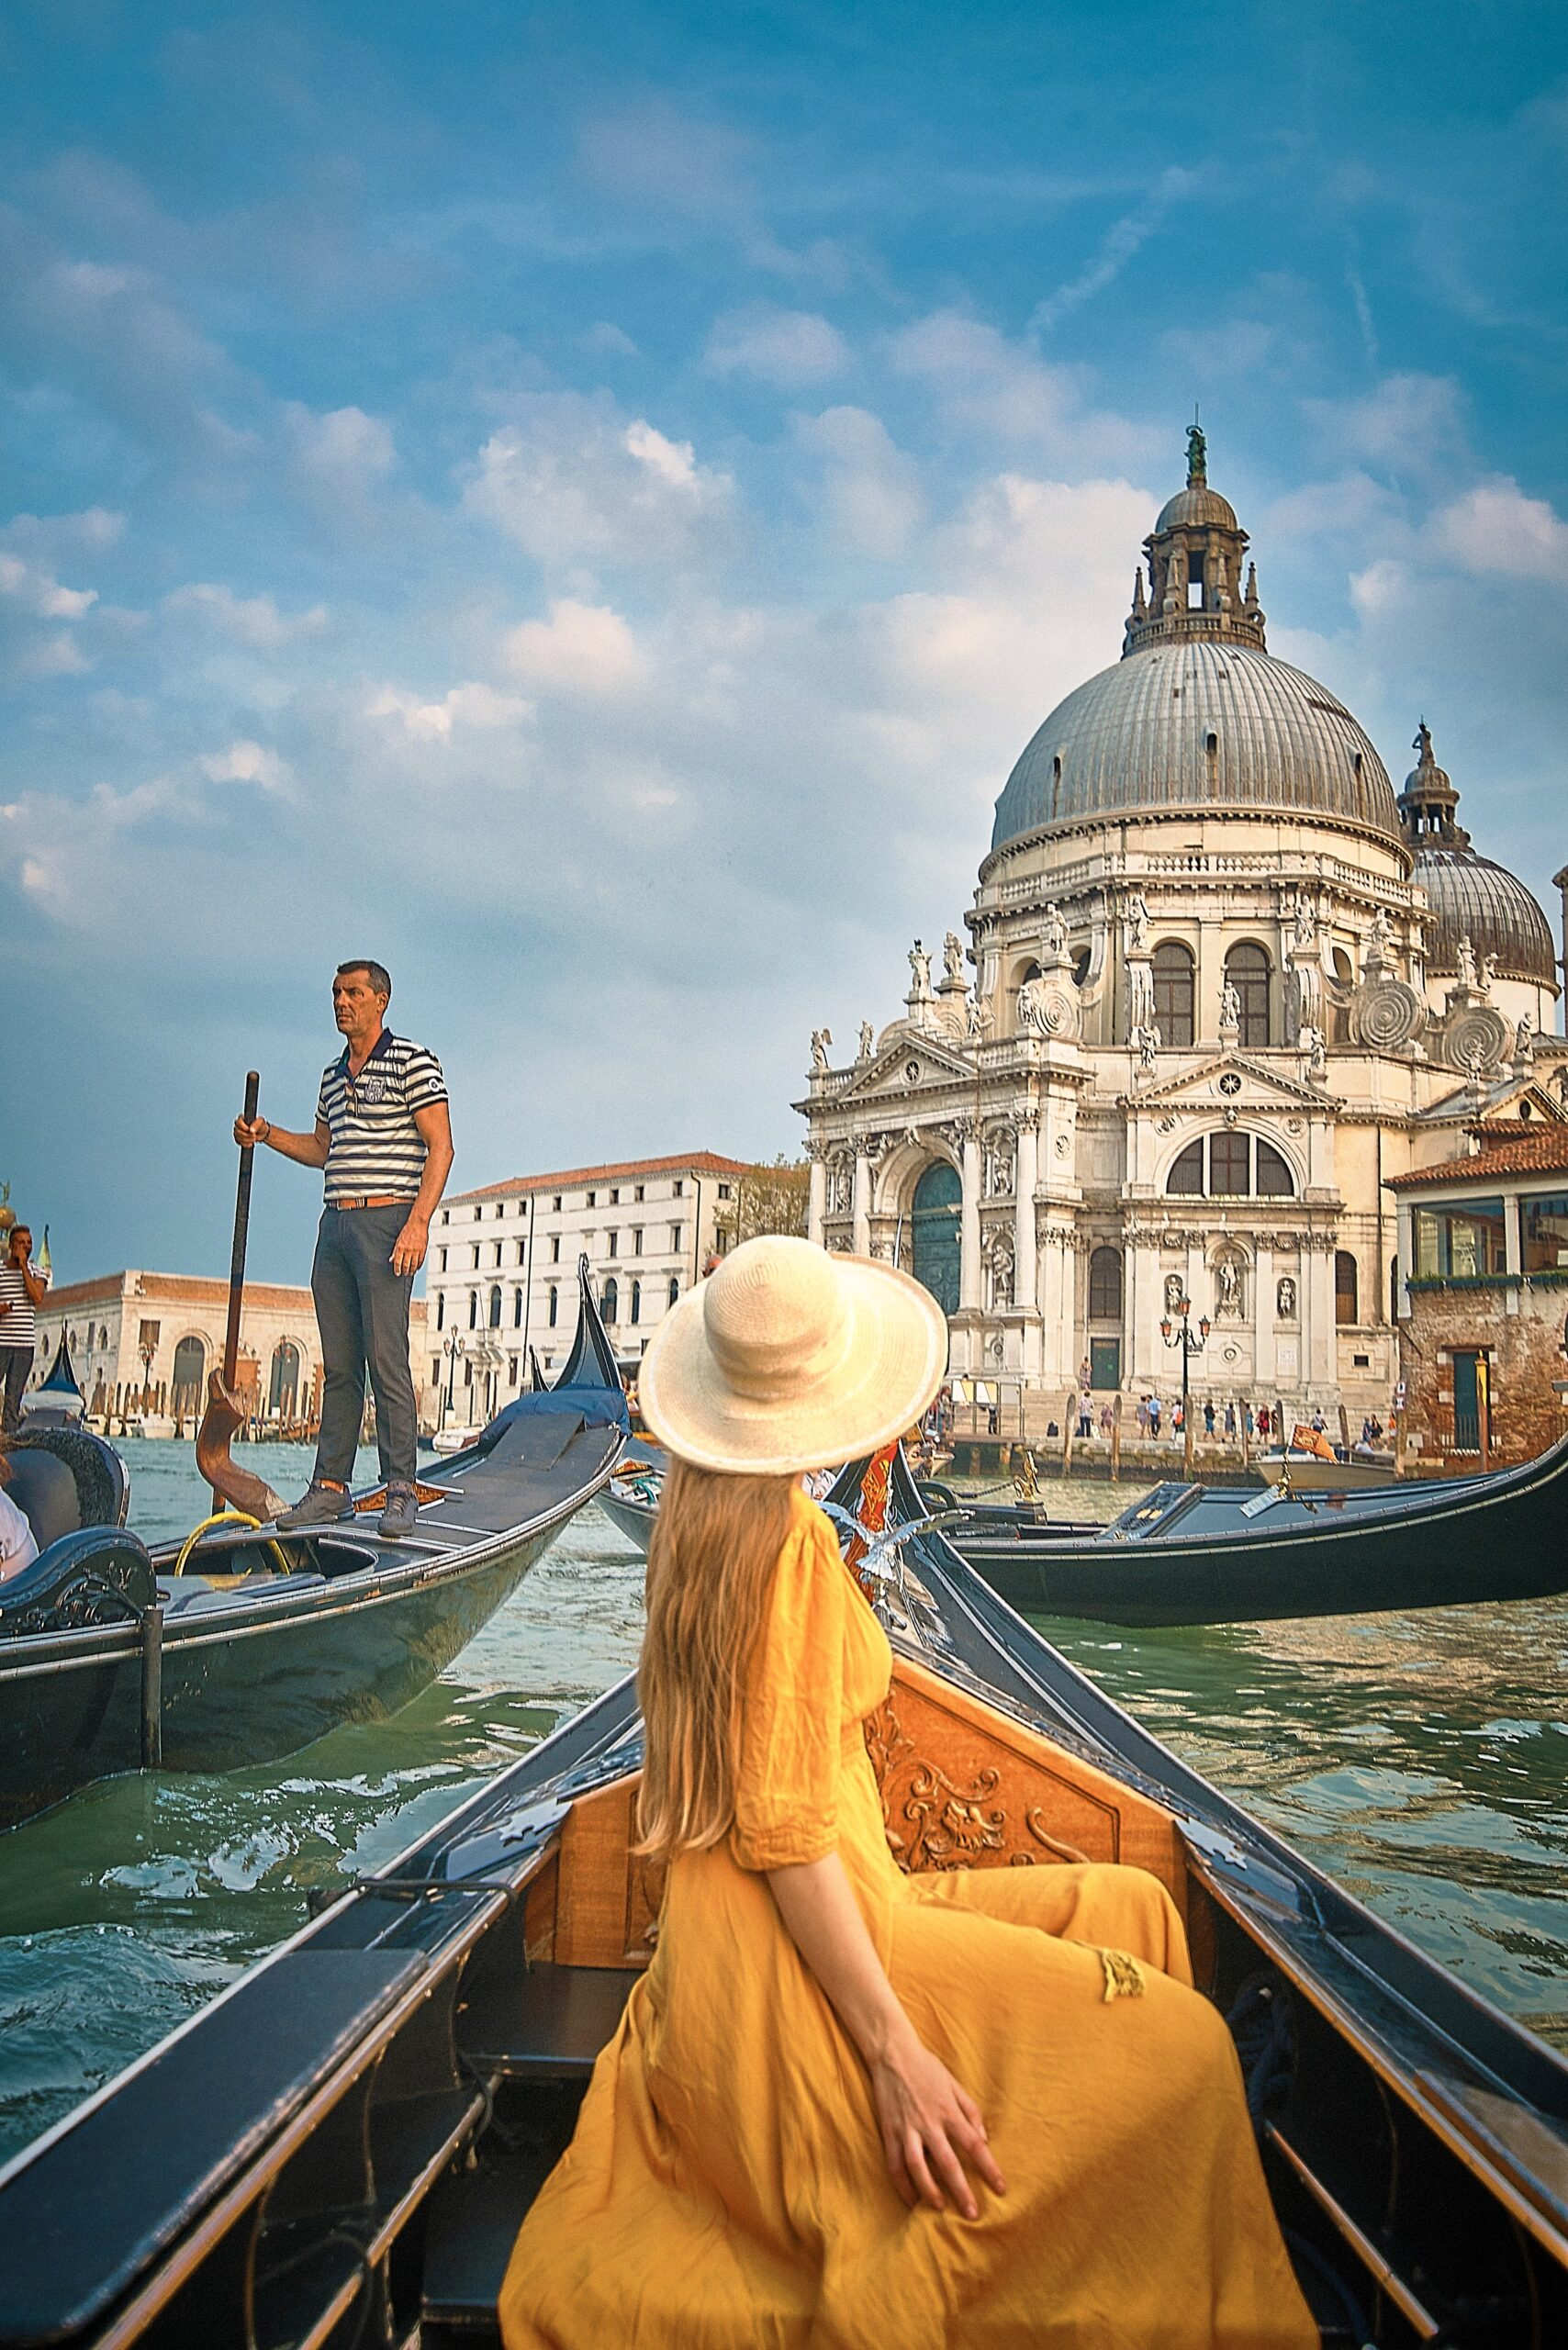 woman riding in a gondola 7 days in Italy